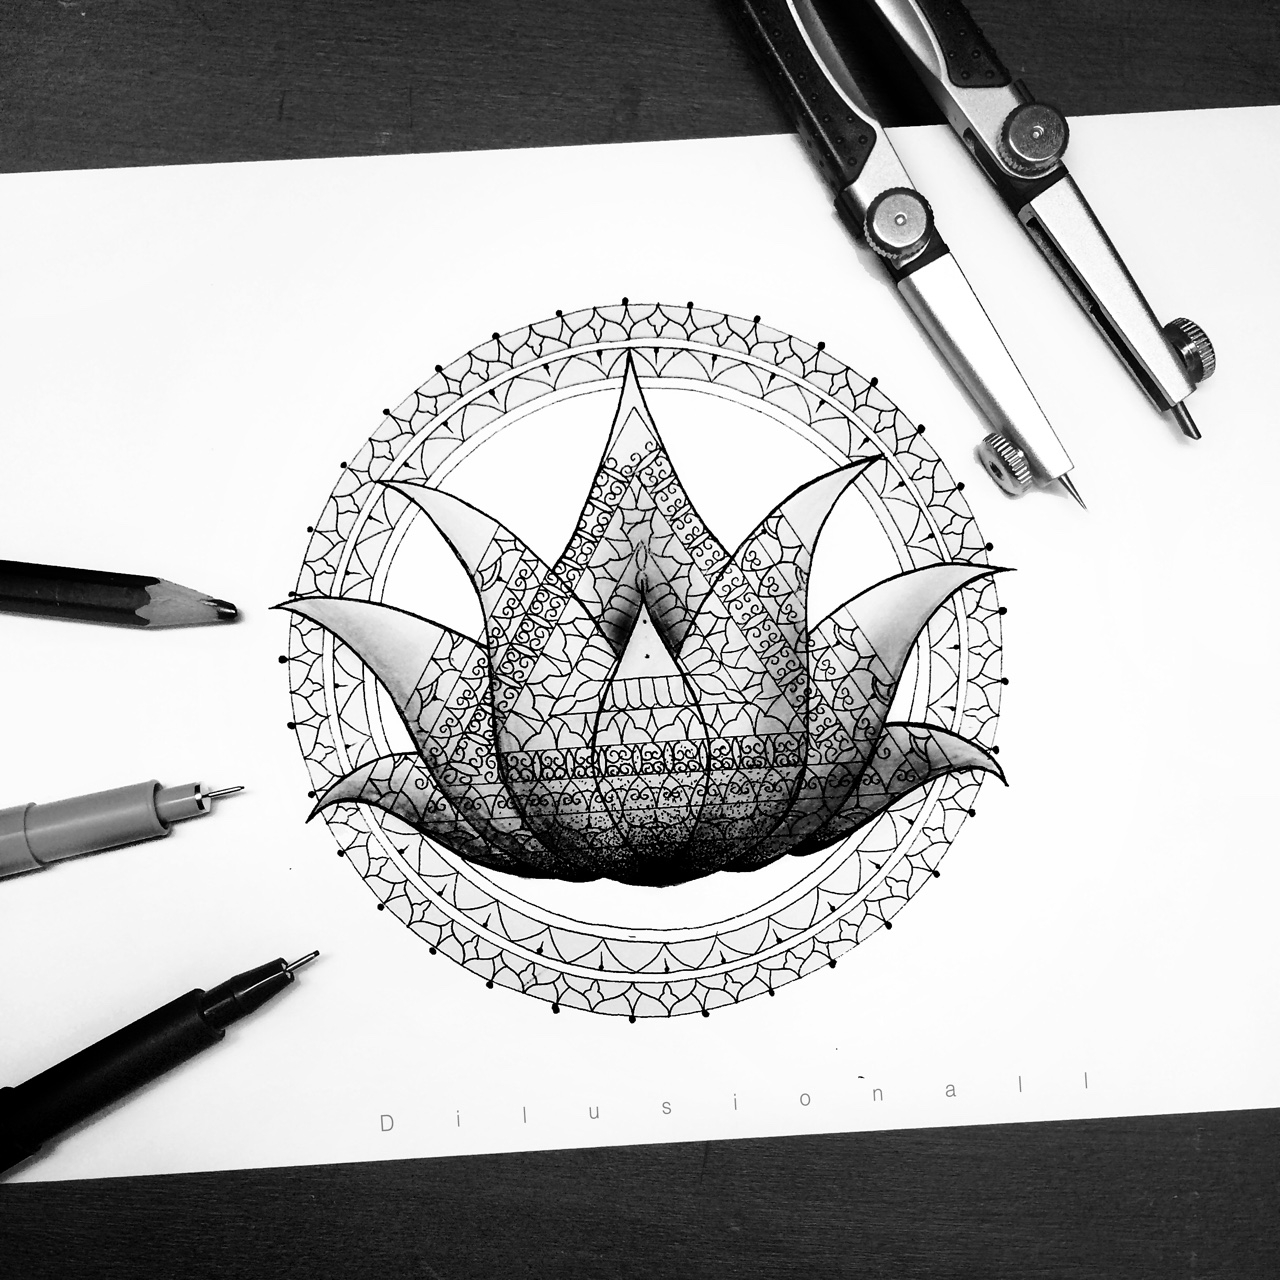 02-Blossom-Dilrani-Kauris-Symmetry-and-Style-in-Mandala-and-Mehndi-Drawings-www-designstack-co